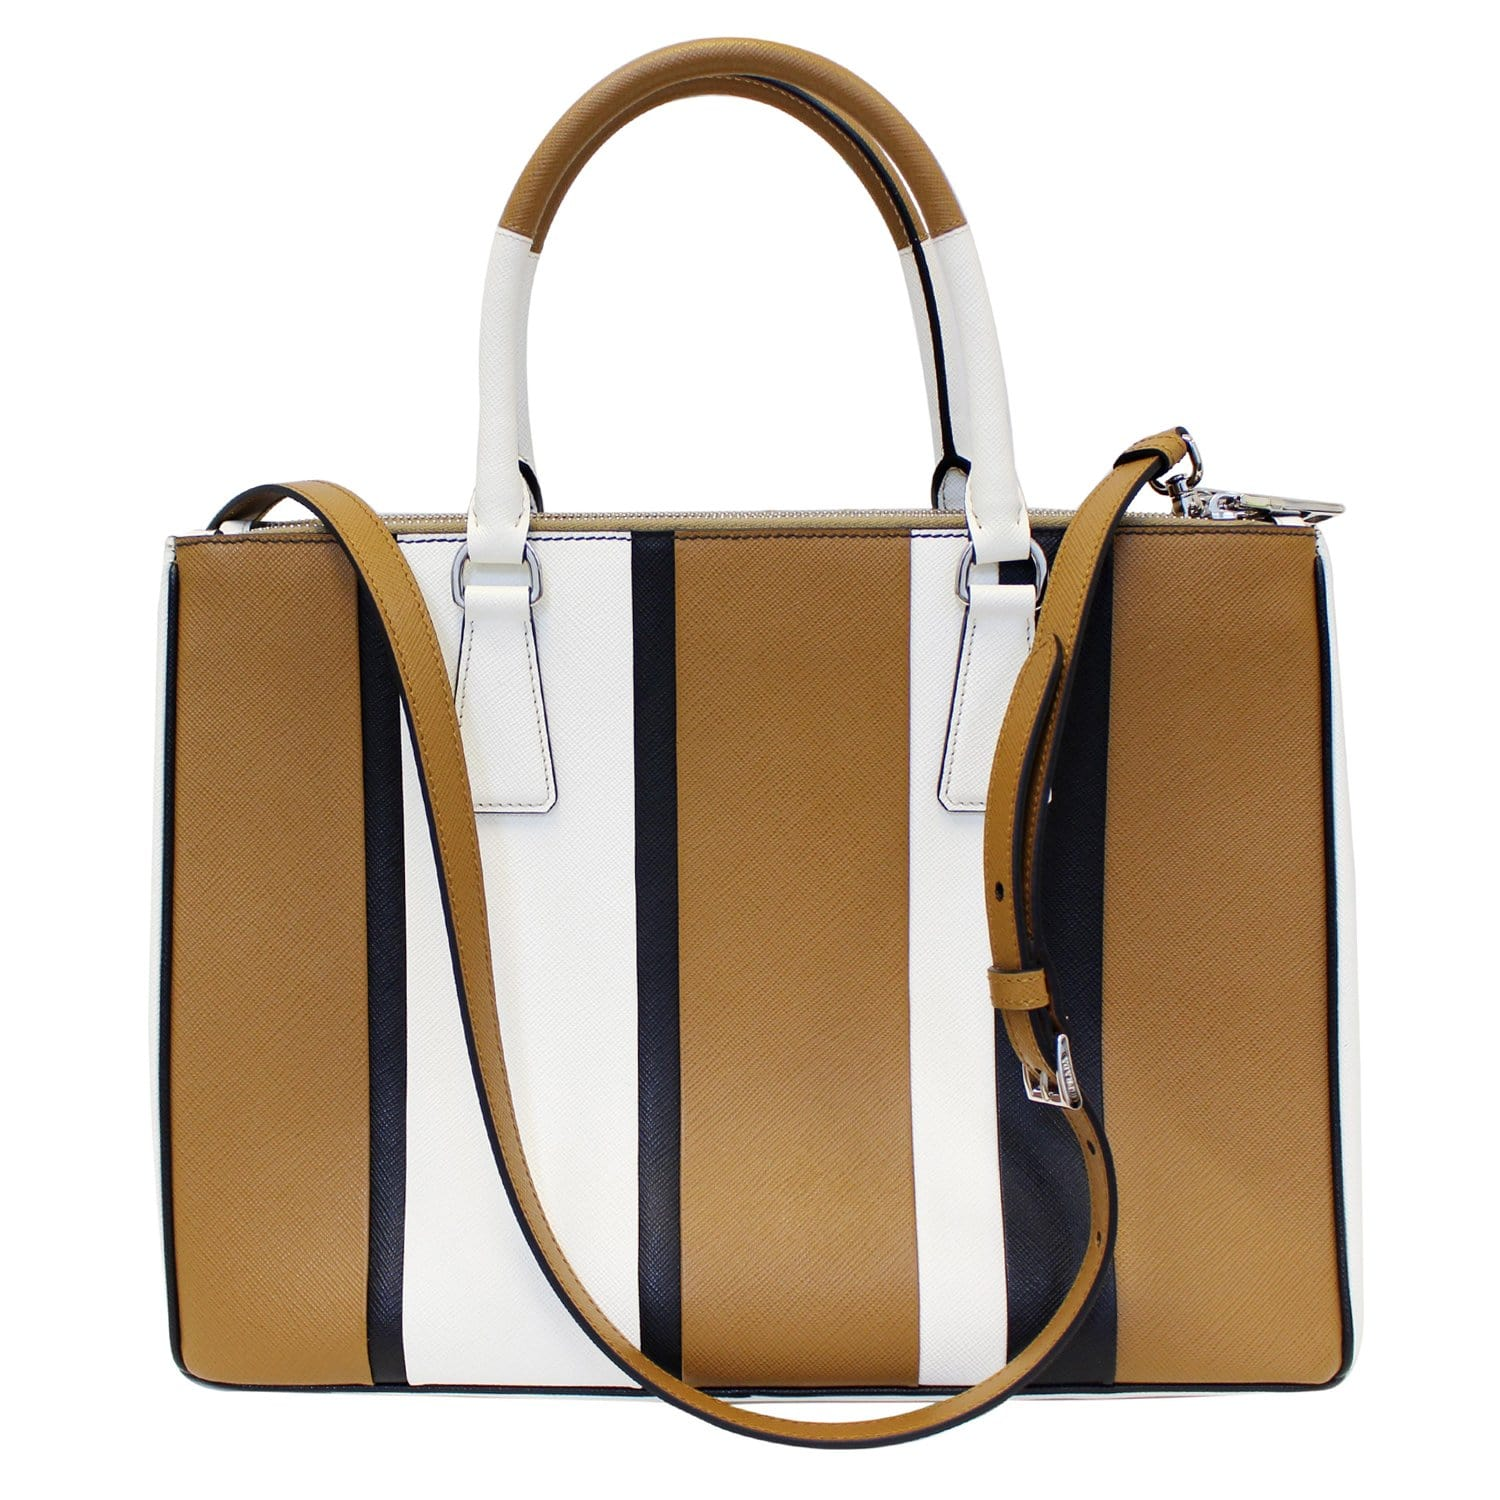 fee7100b945385 PRADA Galleria Baiadera Striped Saffiano Leather Tote Bag